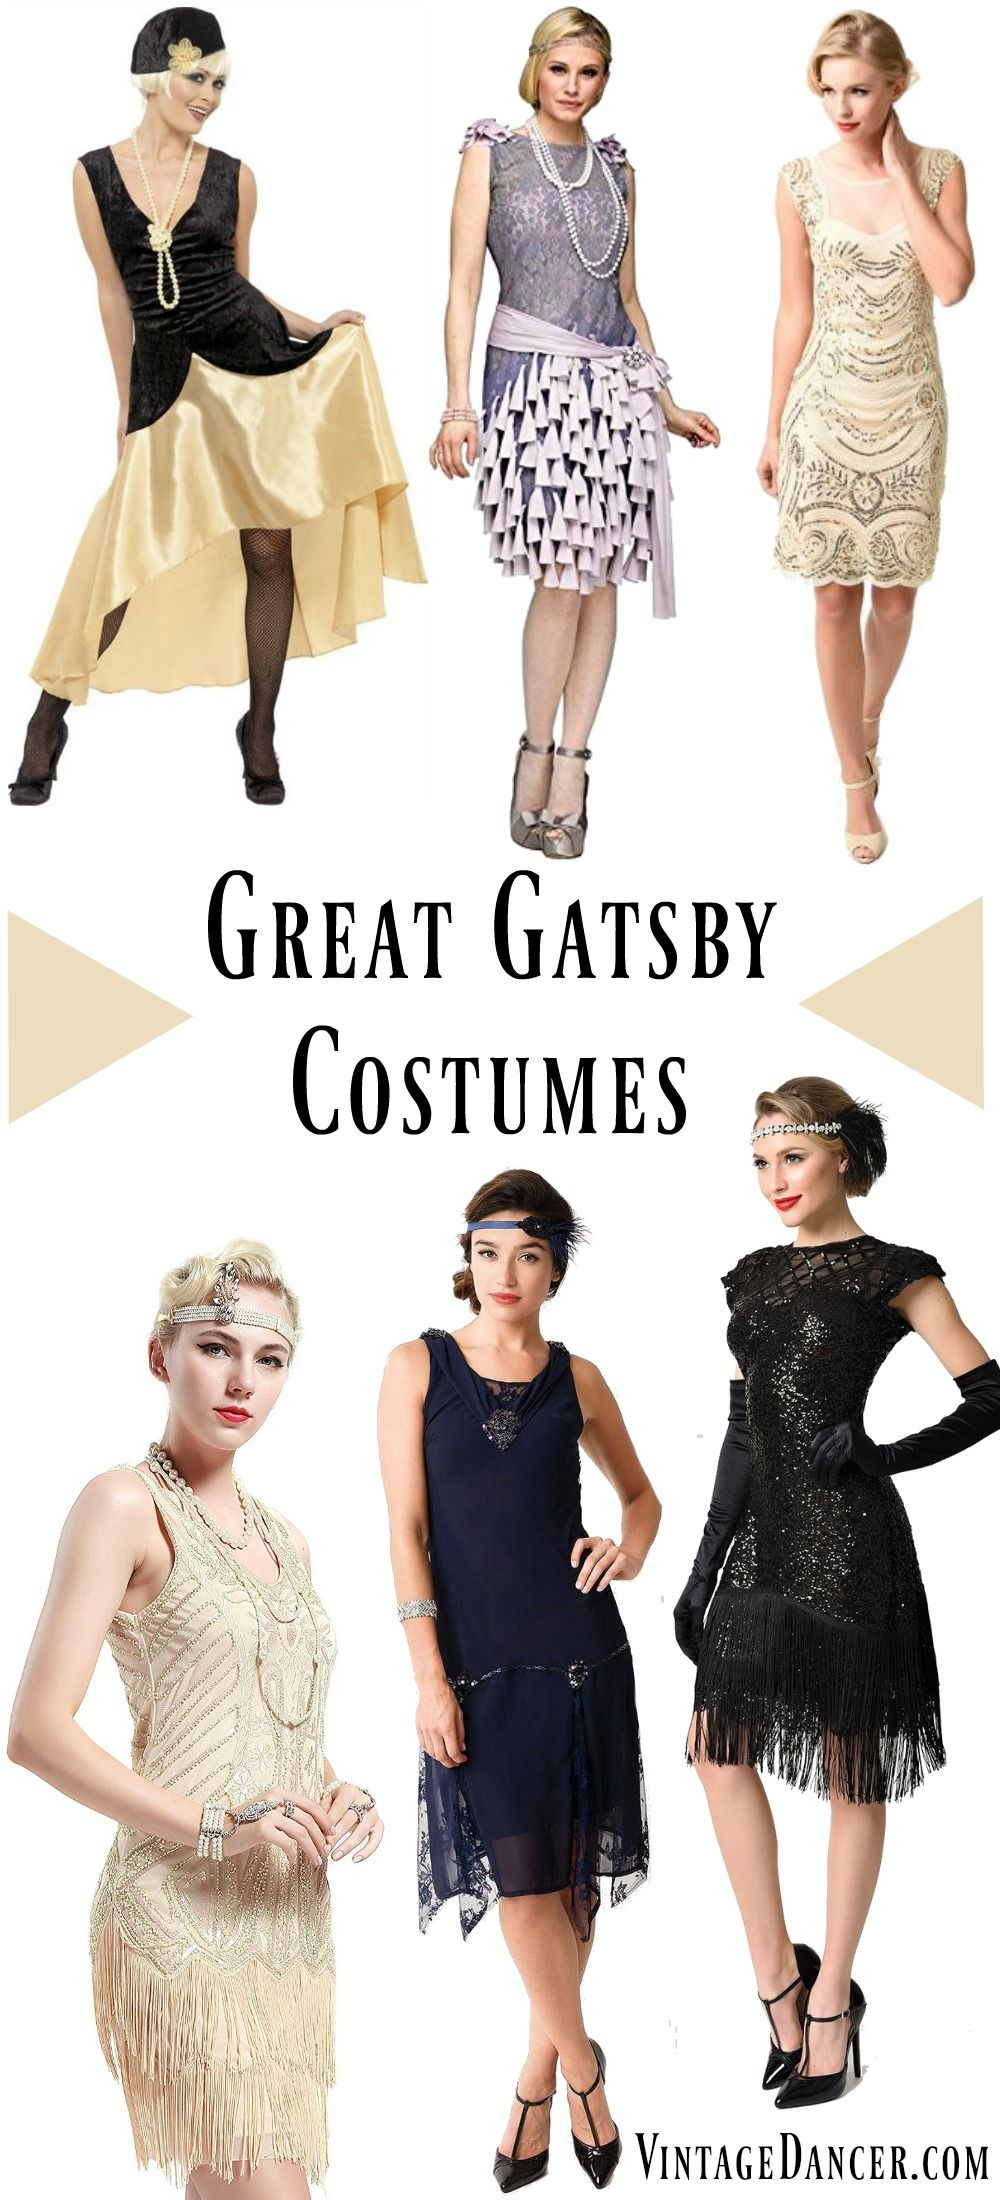 e3915b206 Great Gatsby Dress - Great Gatsby Costumes in 2019